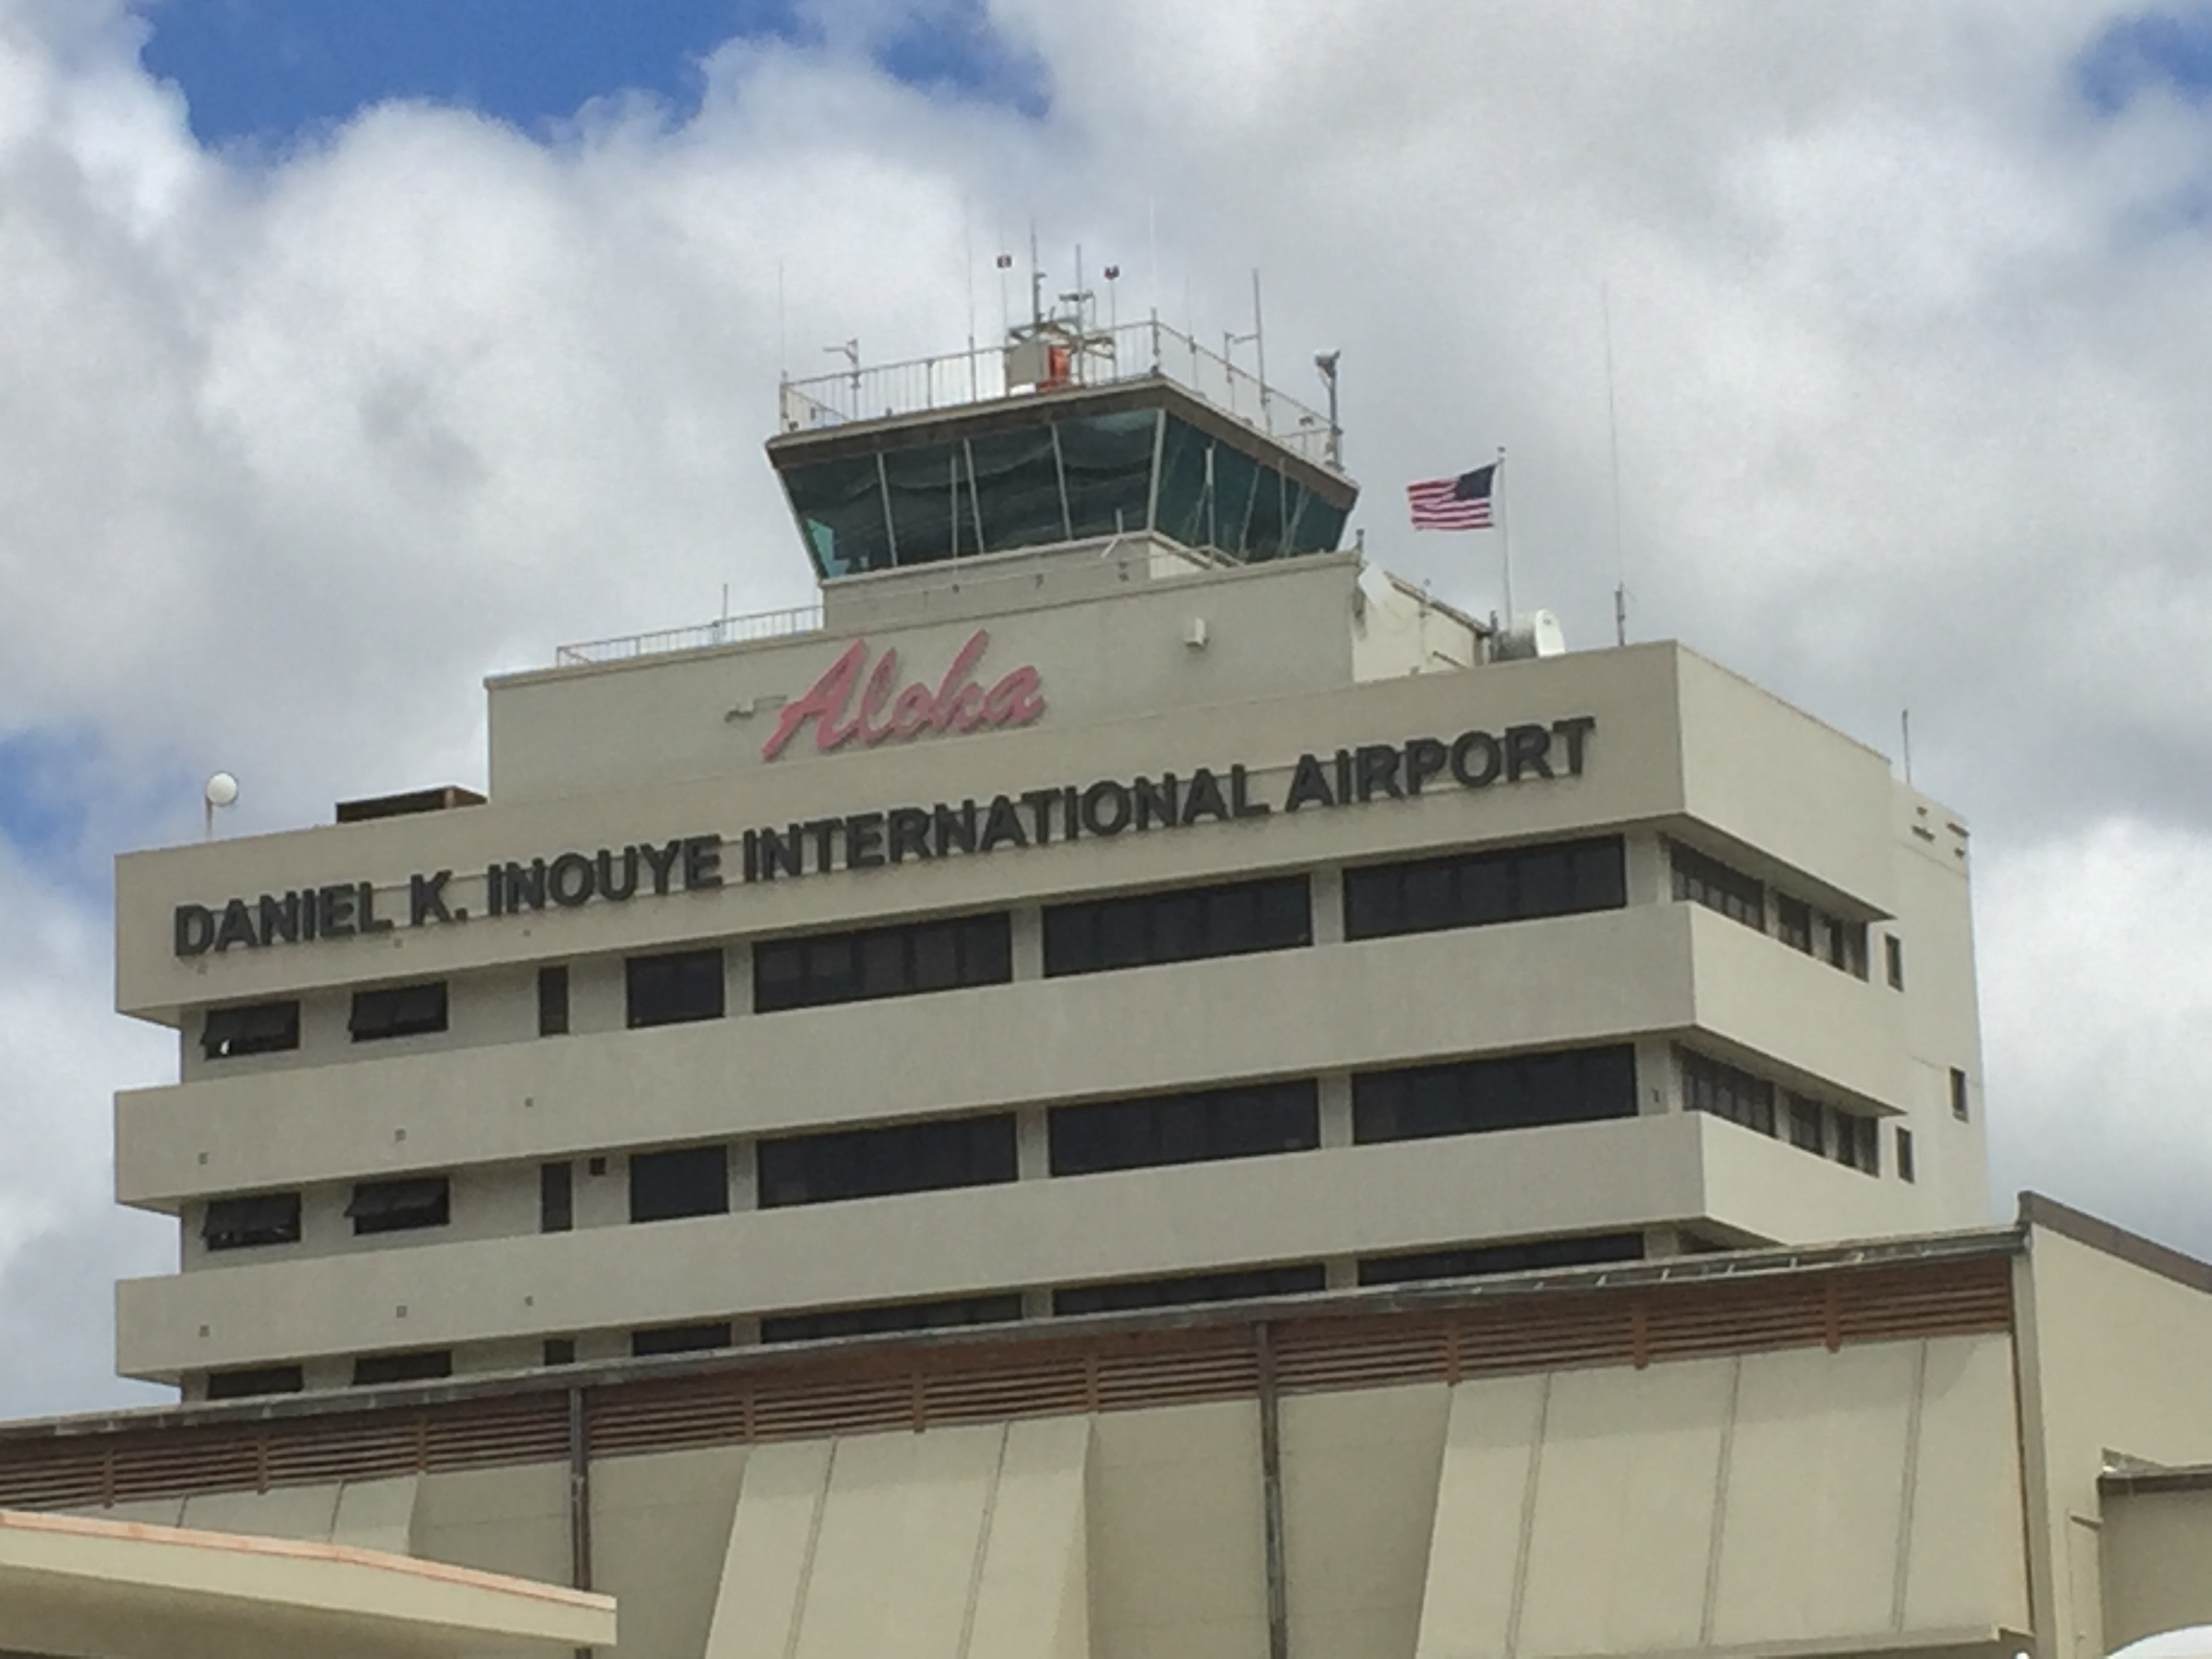 Daniel K Inouye International Airport